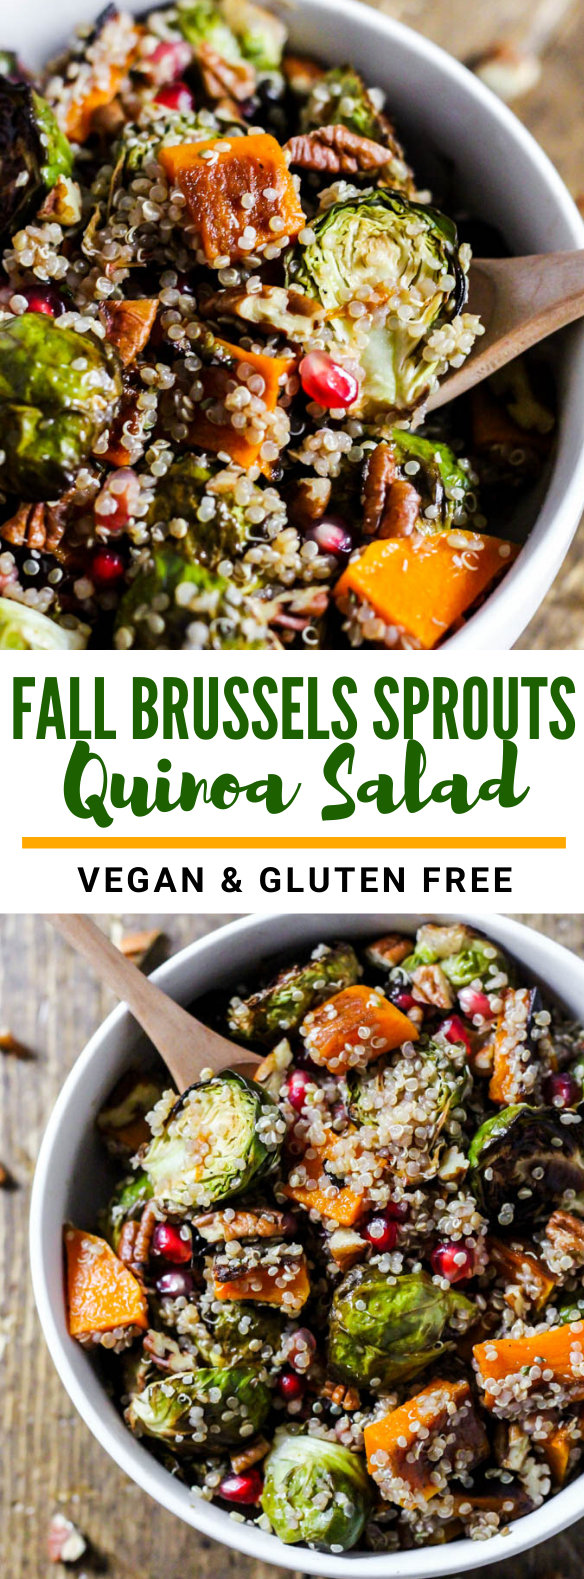 Fall Brussels Sprouts Quinoa Salad  - Vegetarian and Vegan Recipes -